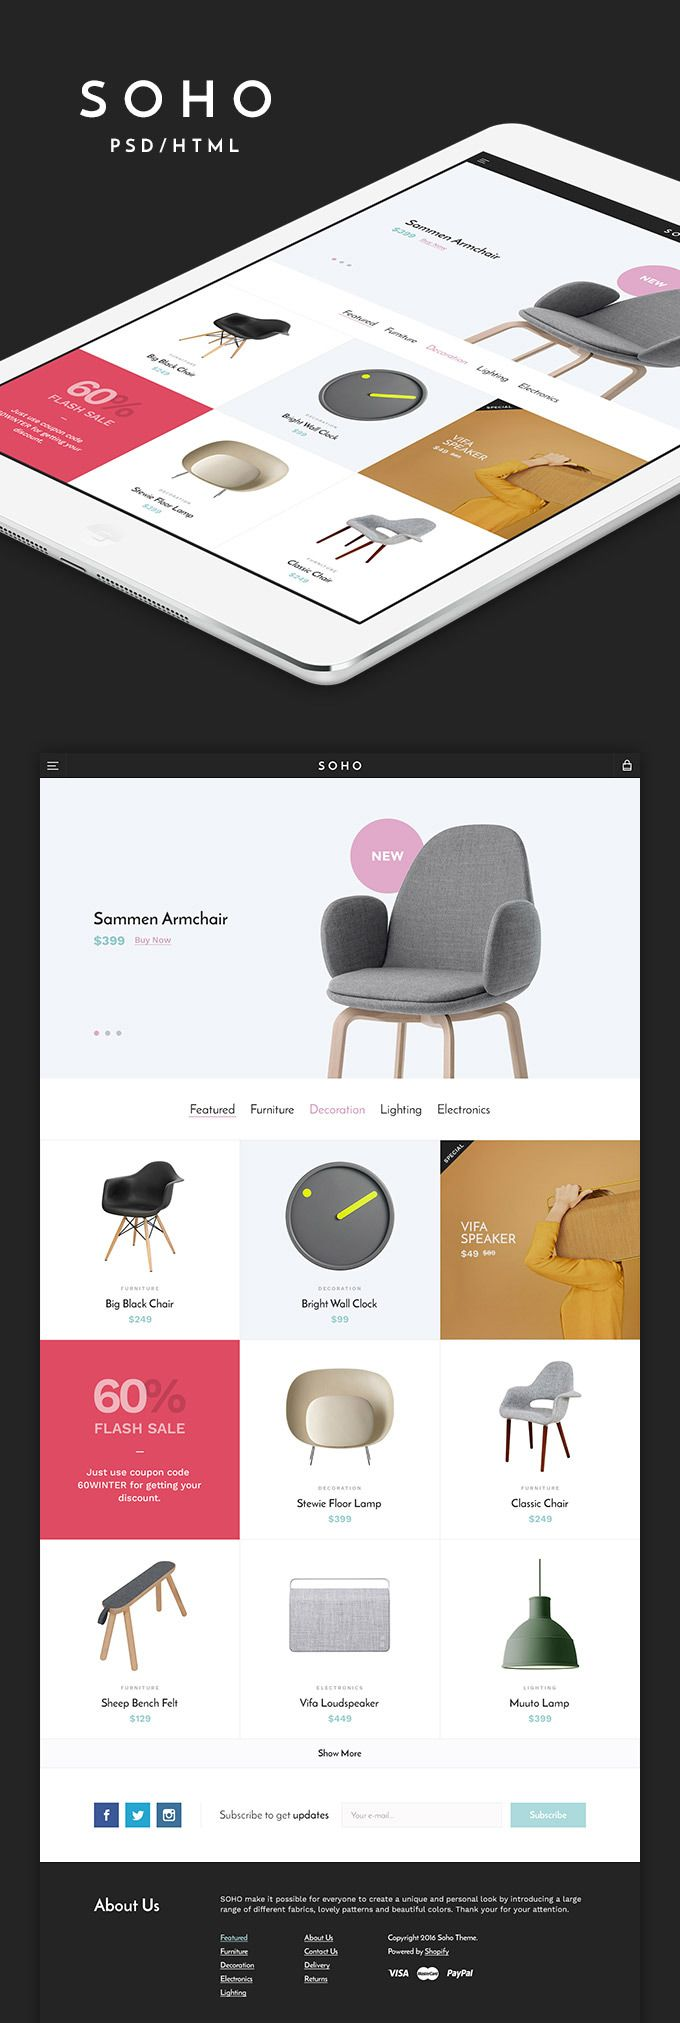 14 best images about free e commerce web template psd on pinterest icons user interface for Pinterest template psd